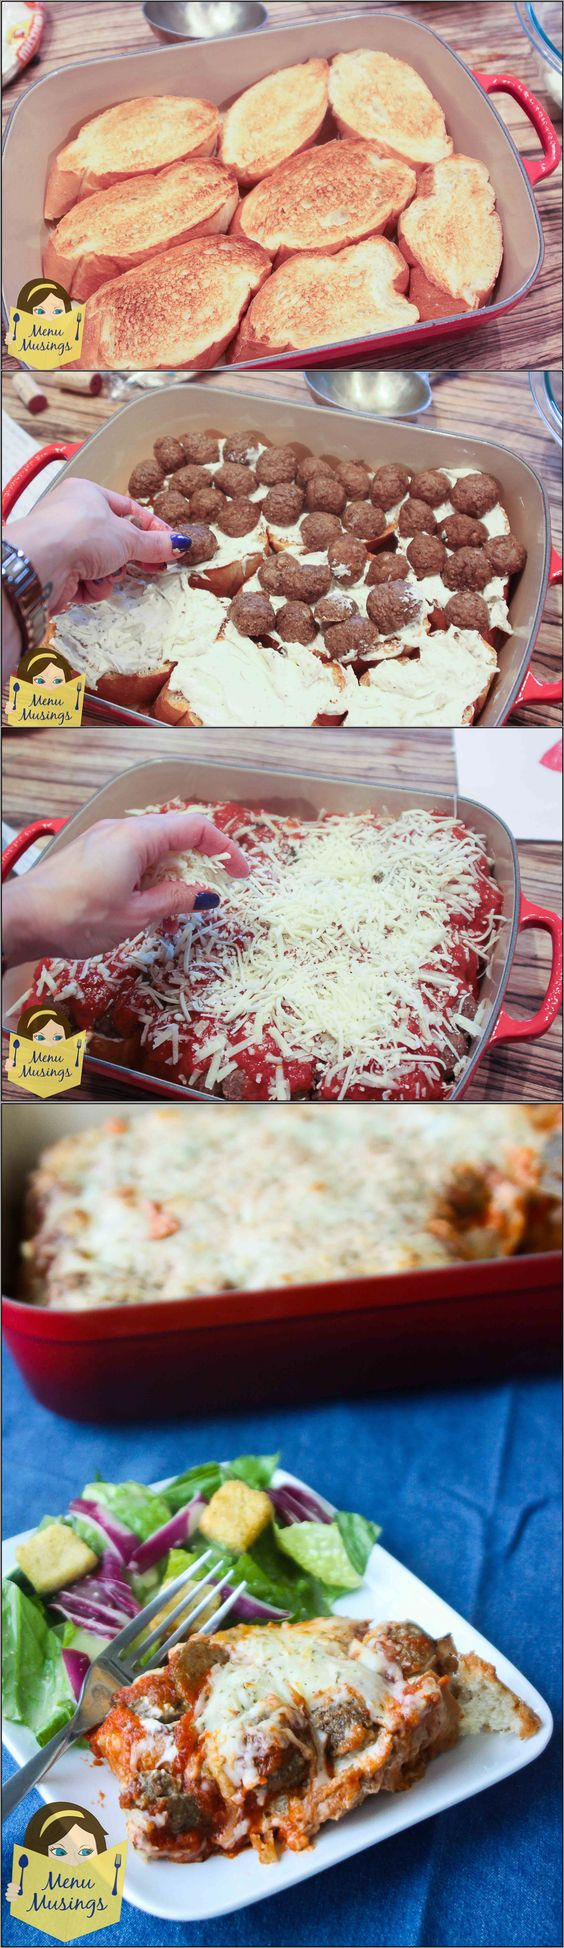 Easy Meatball Sub Casserole - So quick and easy to make on a busy evening!  Step-by-step photos to this family friendly recipe! Also great for those tailgating guys!  <3